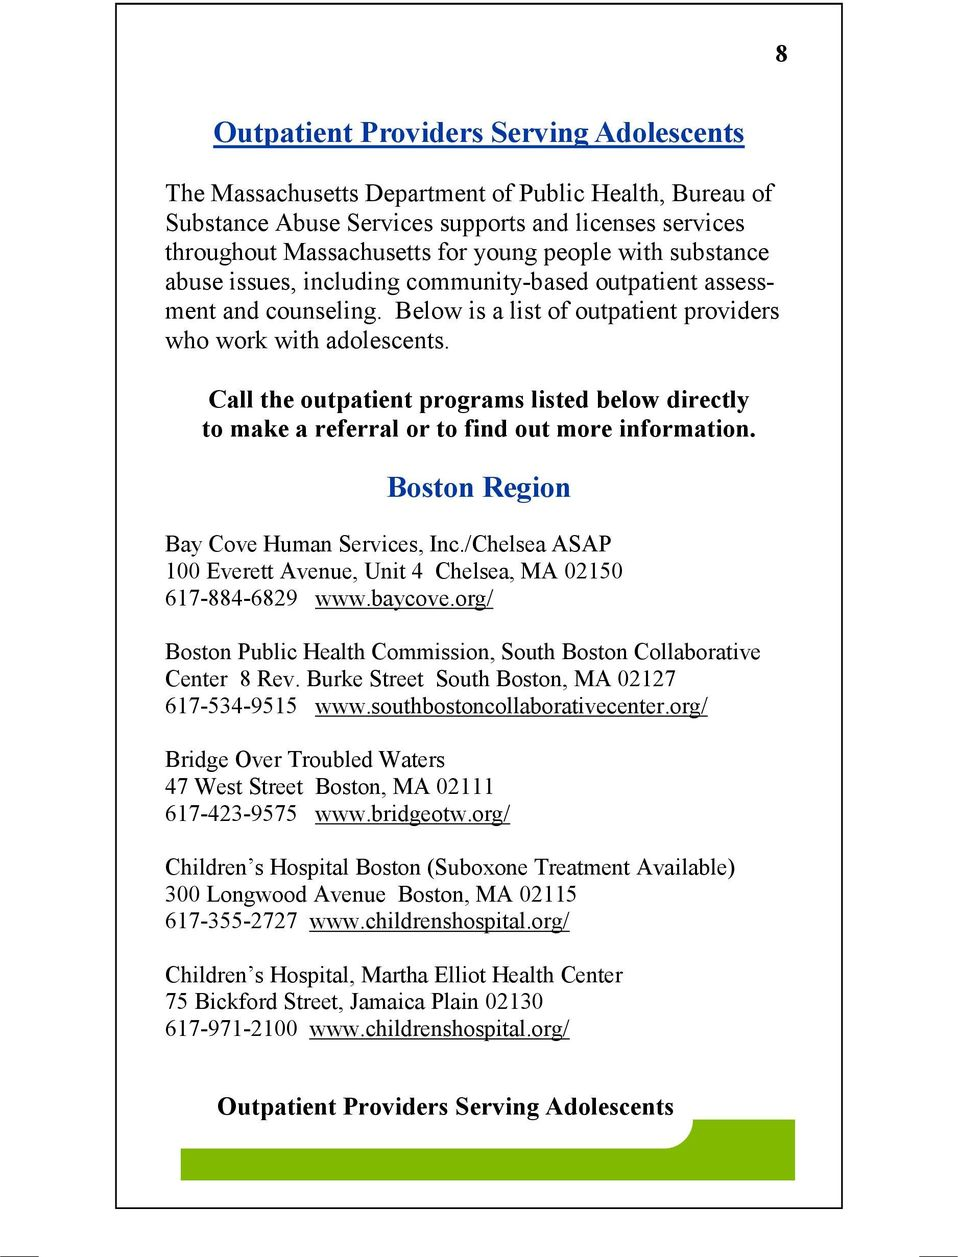 Call the outpatient programs listed below directly to make a referral or to find out more information. Boston Region Bay Cove Human Services, Inc.